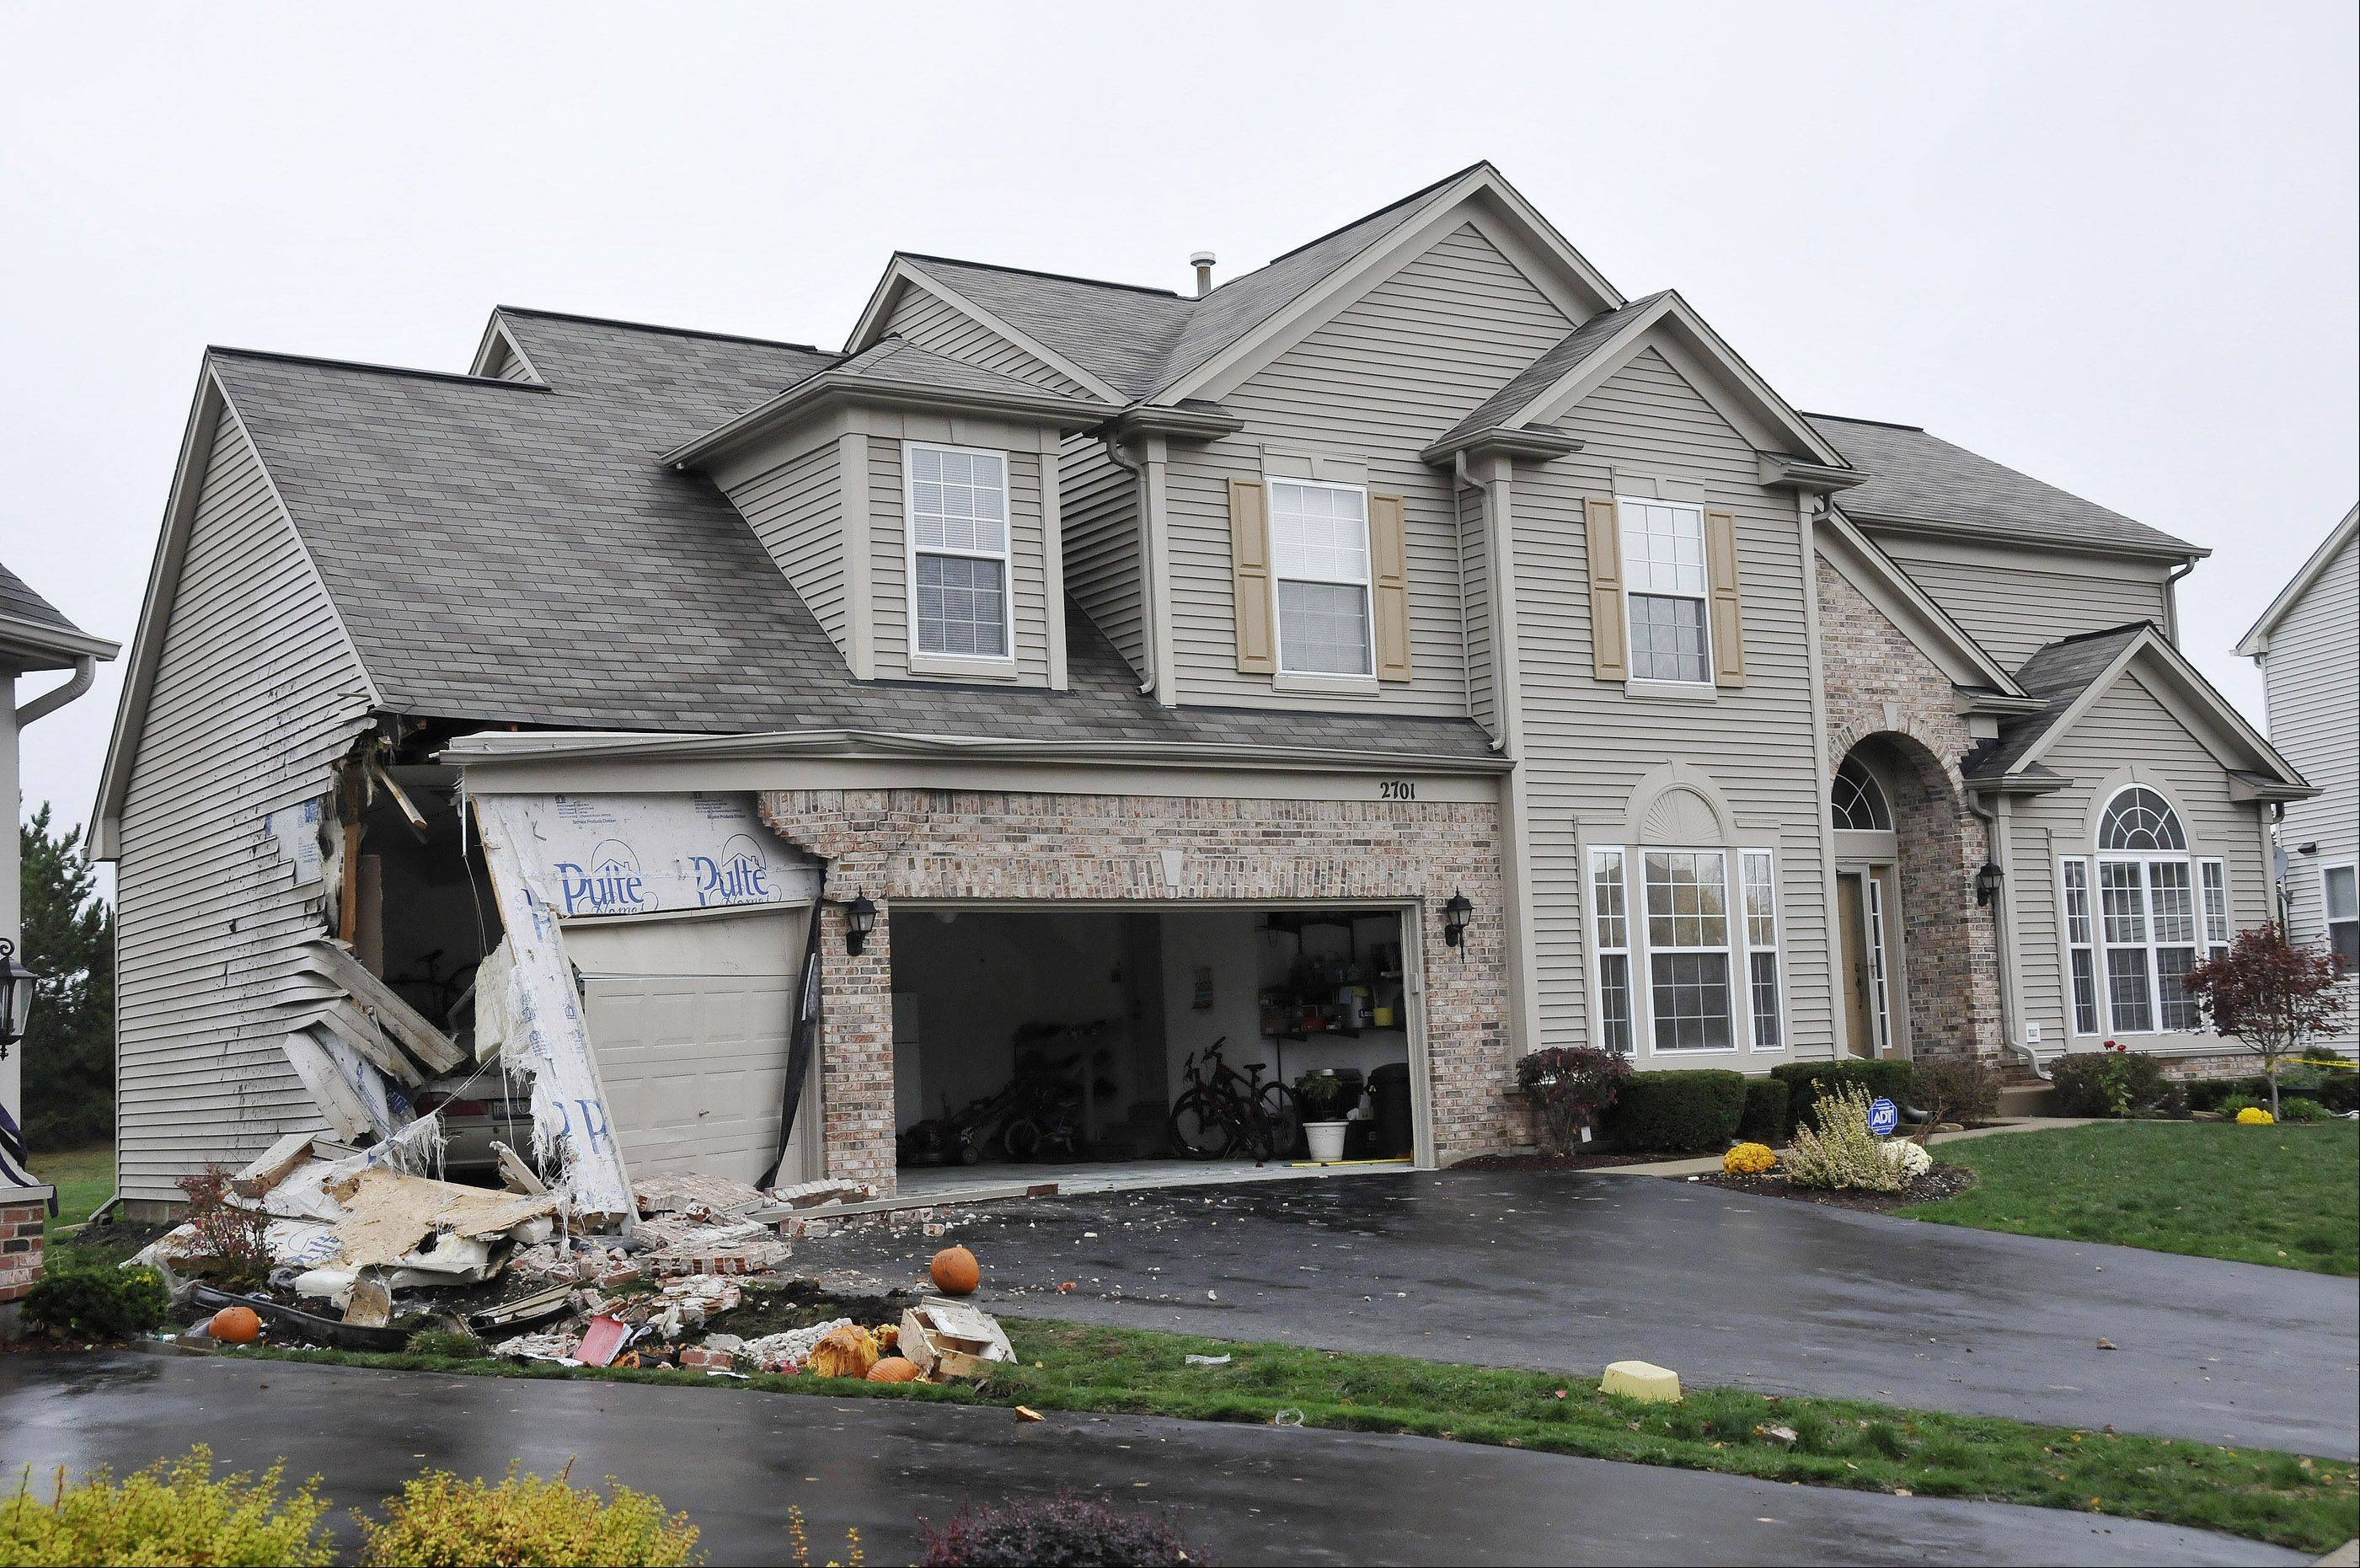 Devin Meadows, 15, of Aurora, was killed Oct. 23 when the car he was riding in crashed into a house's attached garage on the 2700 block of Hamman Way in Aurora. The alleged driver, Logan Krogman, is charged with reckless homicide.